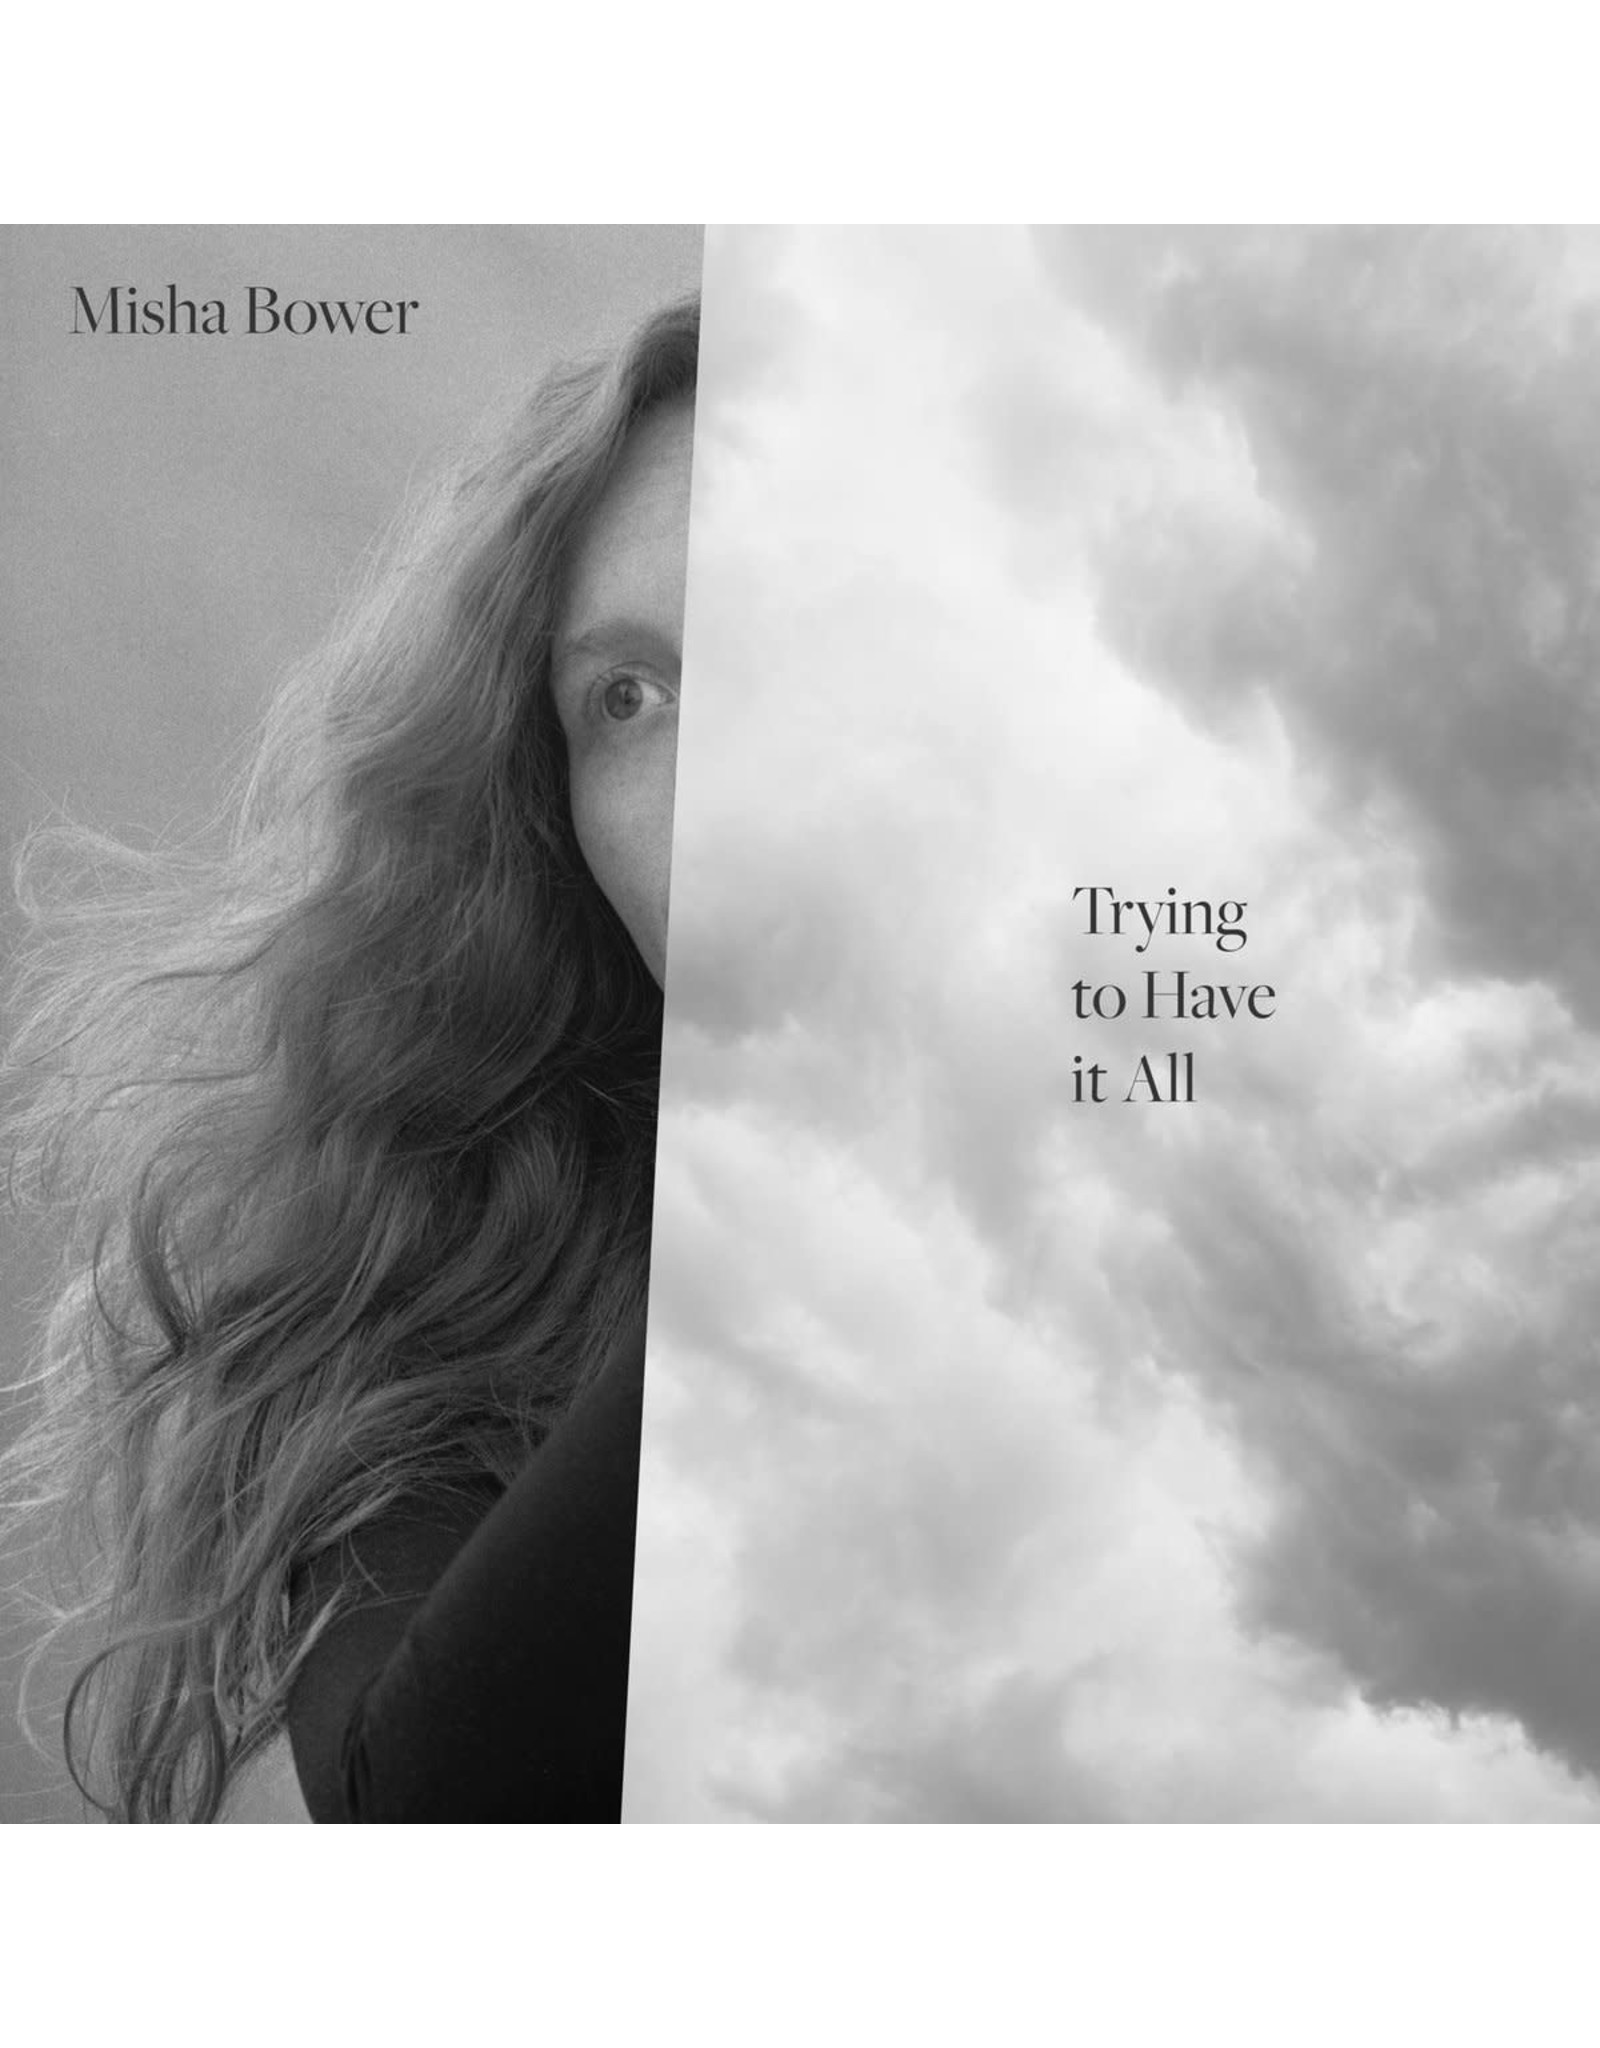 Bower, Misha - Trying to Have It All LP